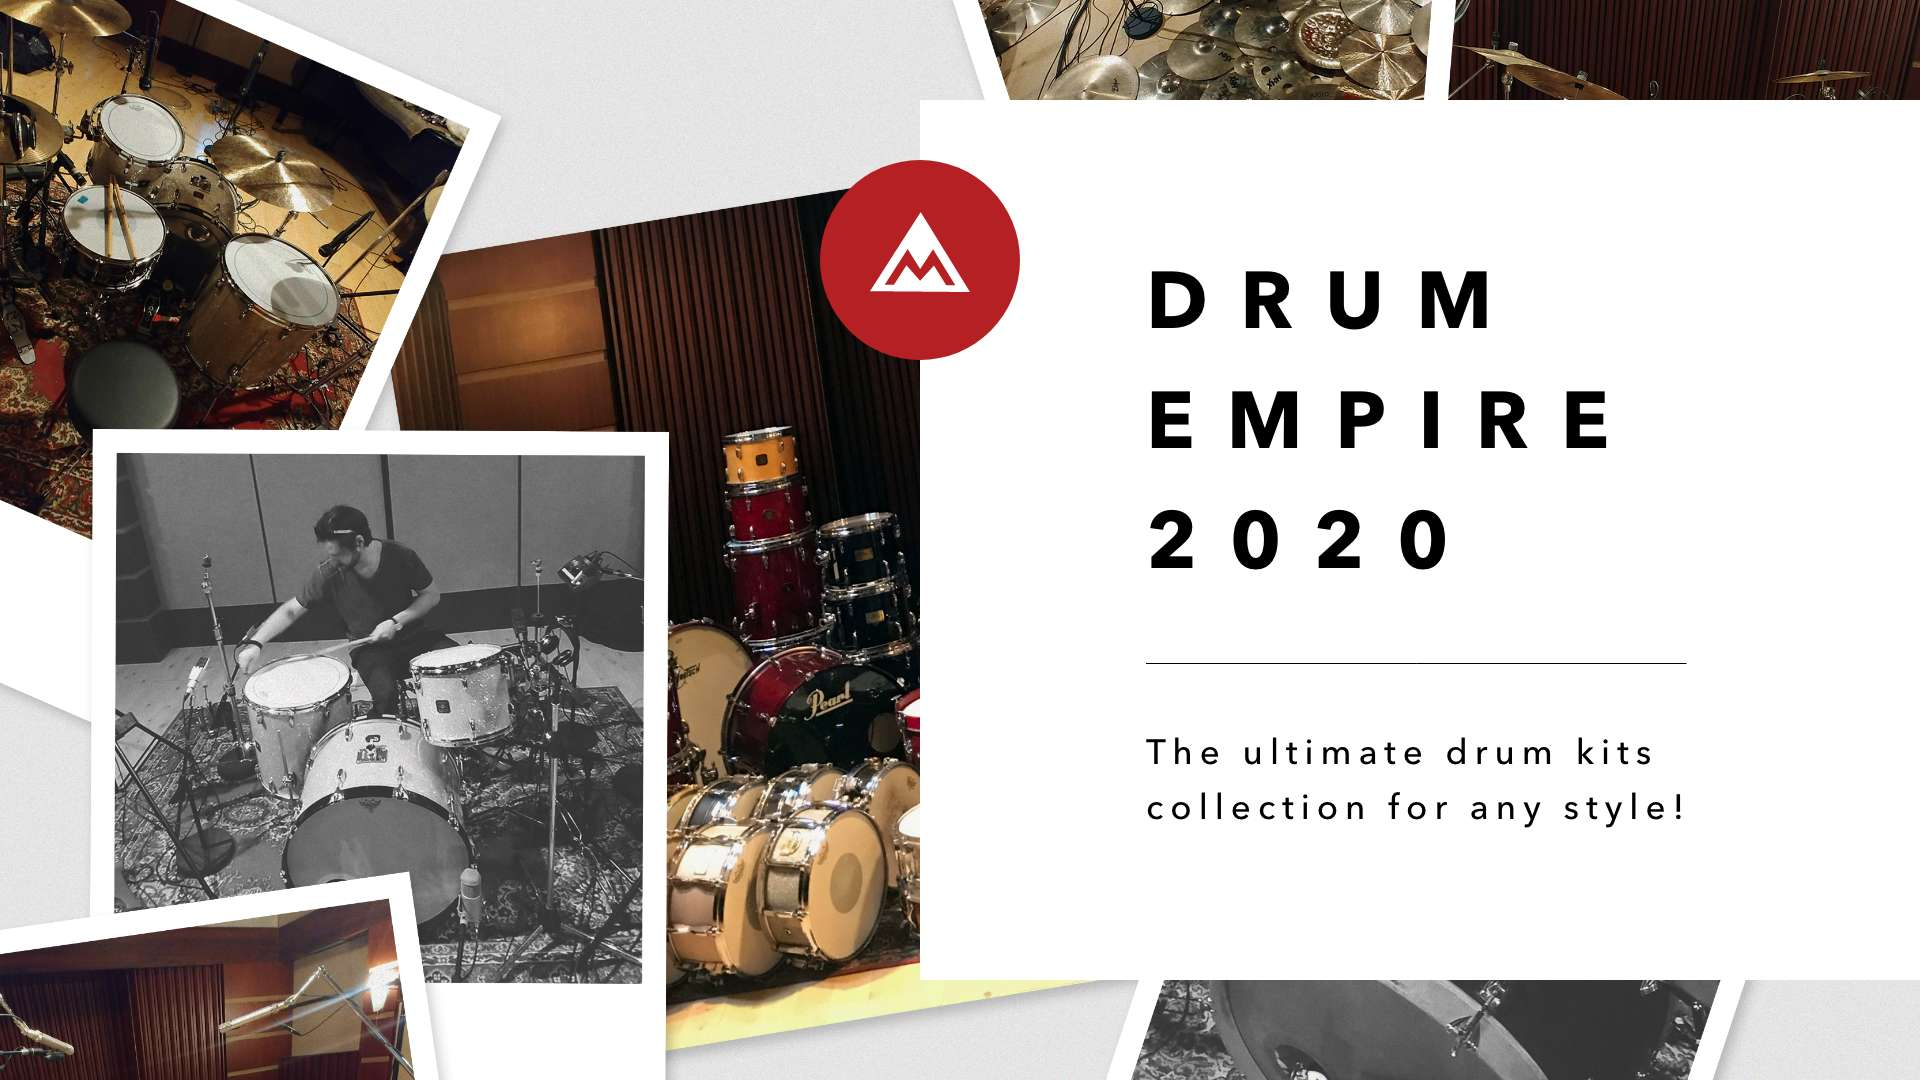 Drum Empire 2020 image